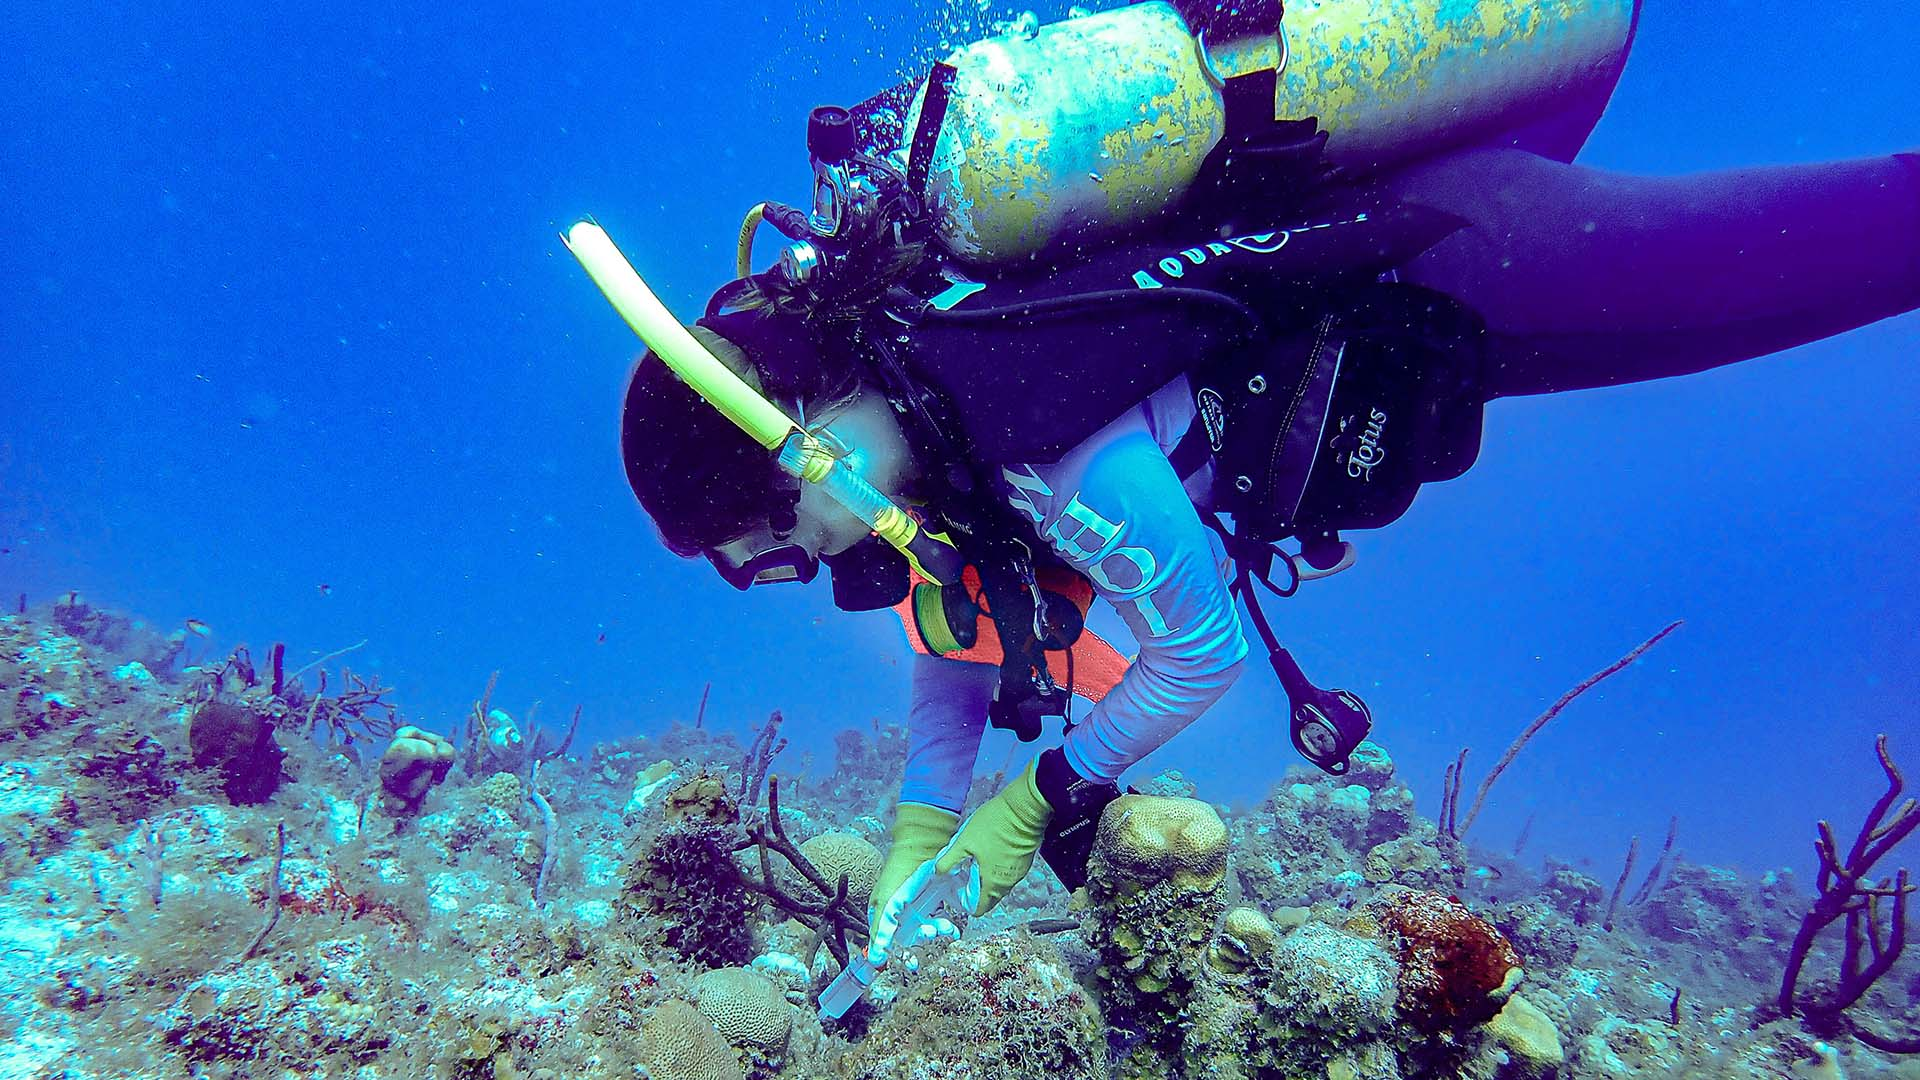 Cynthia Becker takes a water sample over a diseased coral near St. Thomas in the U.S. Virgin Islands in 2020. (Photo courtesy of Amy Apprill, © Woods Hole Oceanographic Institution)